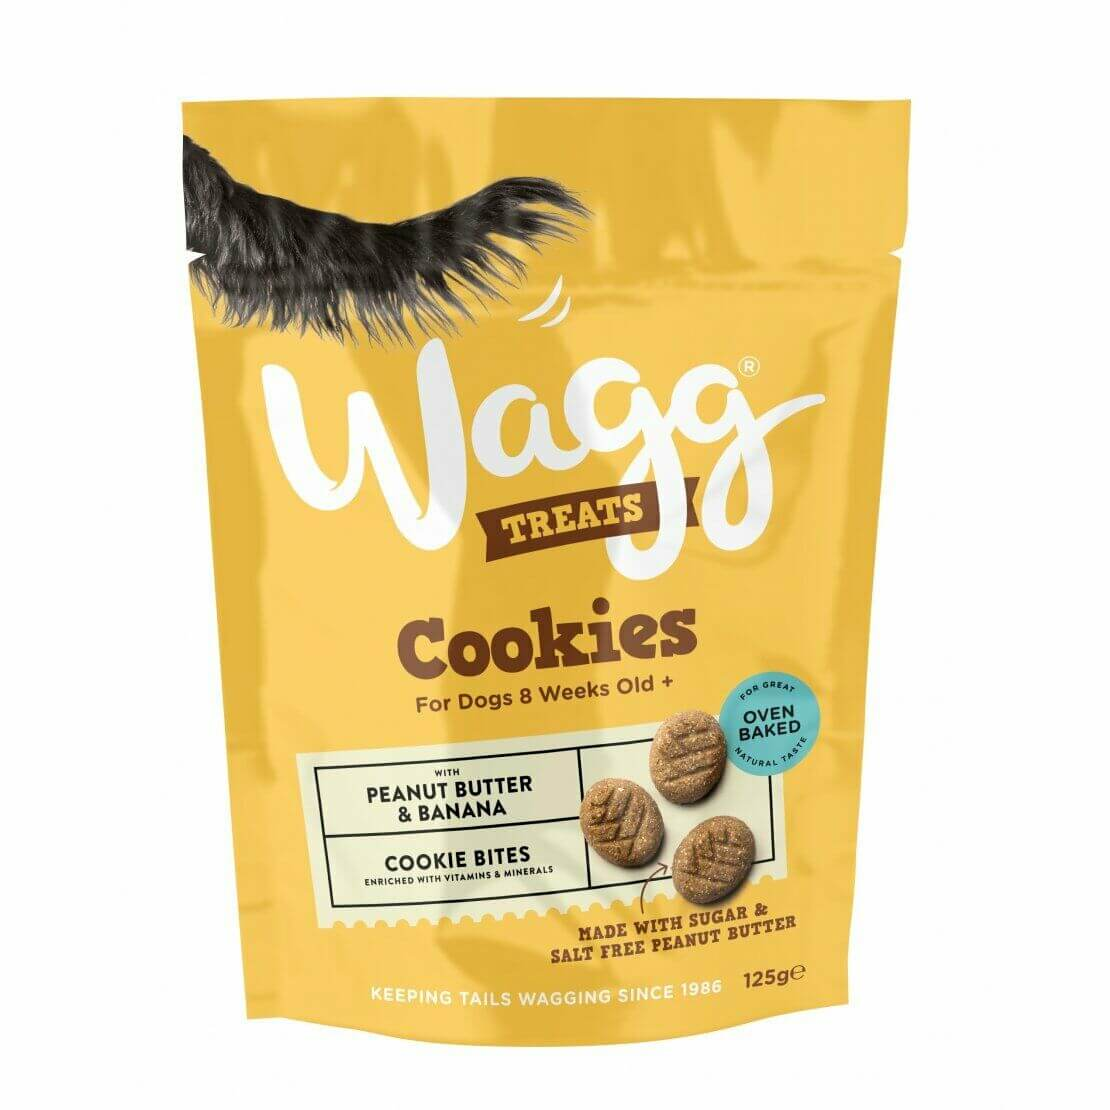 Wagg Cookie Treats - Peanut Butter & Banana, Dog Treats by Dog In A Box